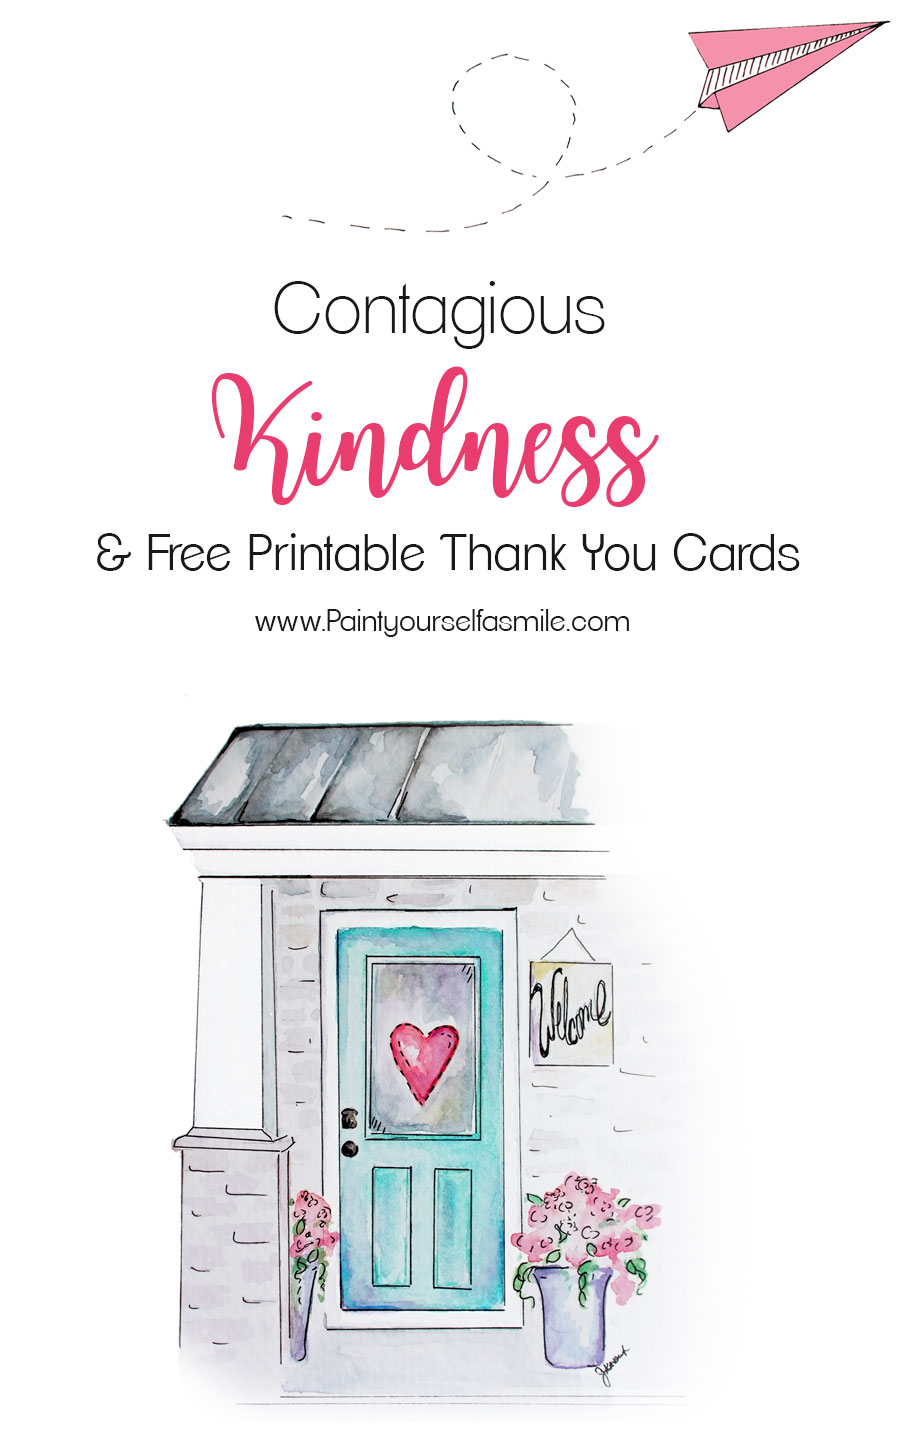 2 Beautiful Free Downloadable Watercolor Printables From The Contagious Kindness Project